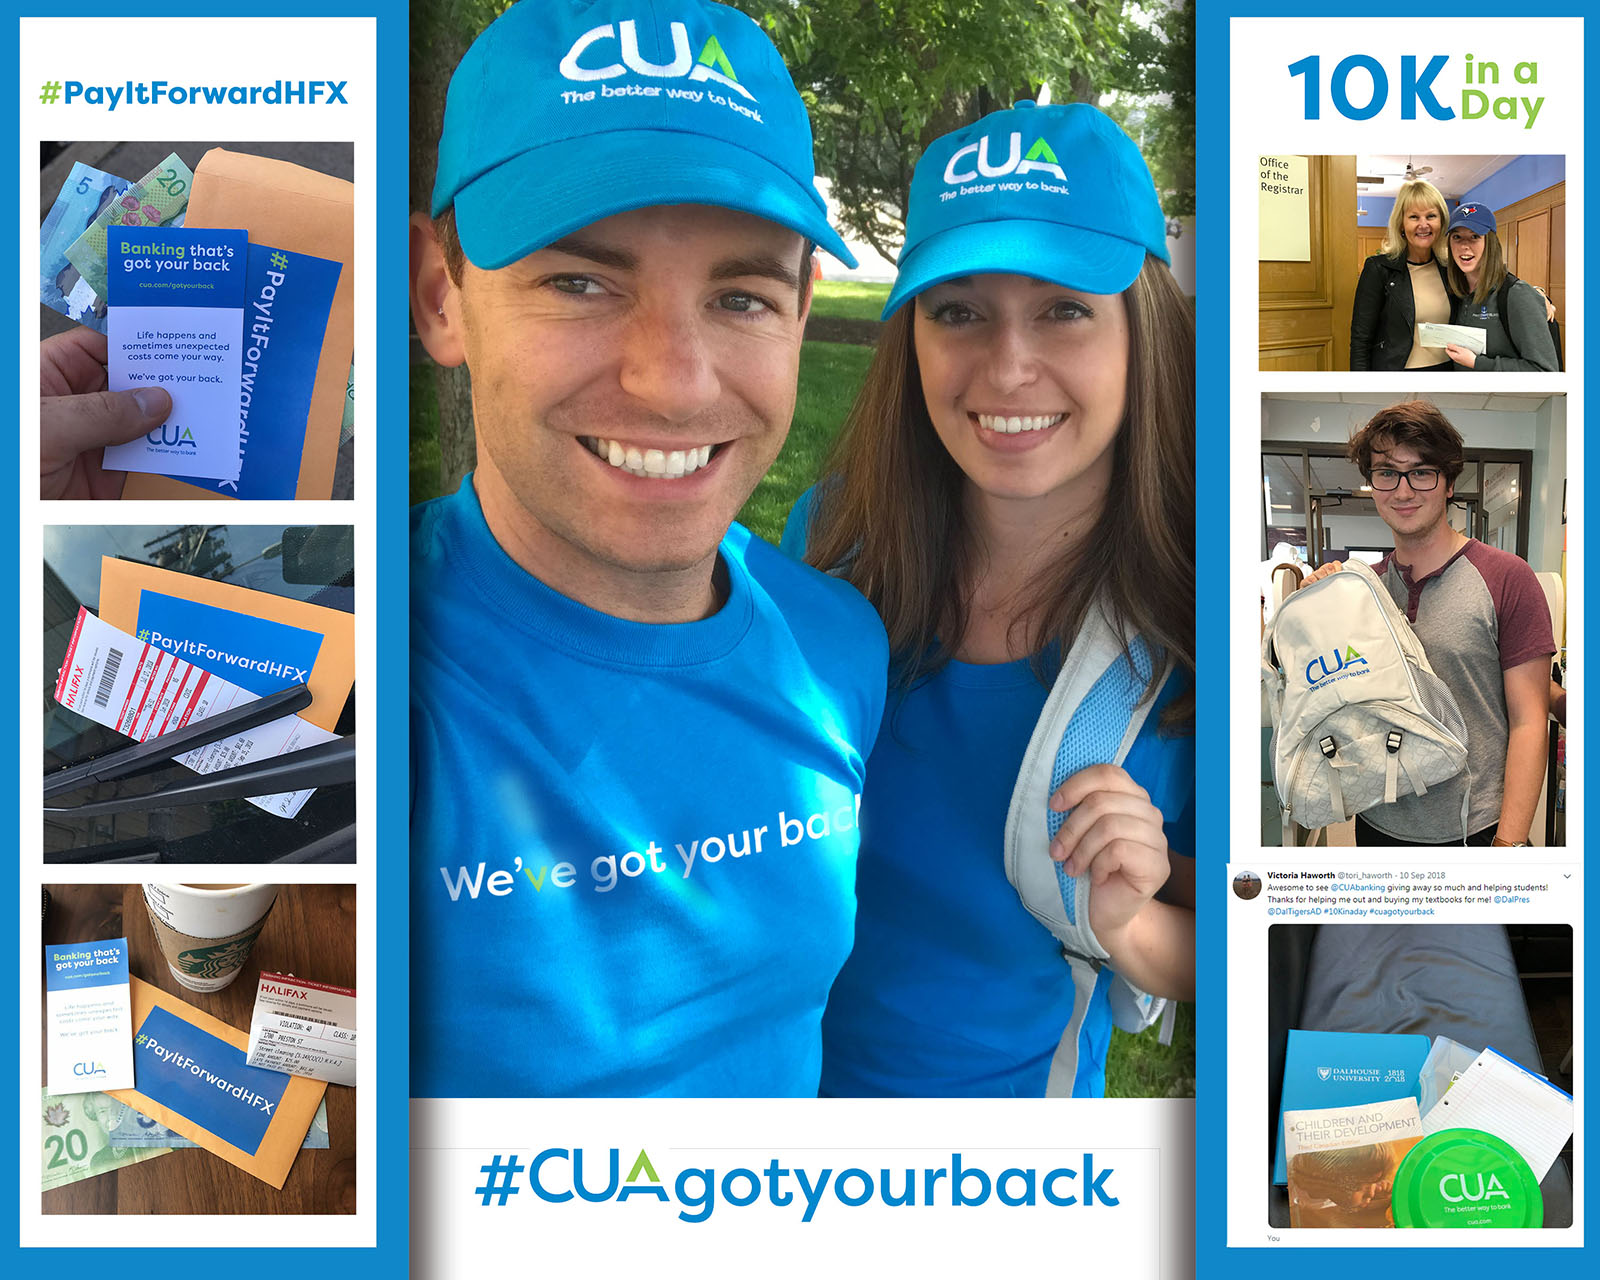 Collage of members of the CUA community giving back.